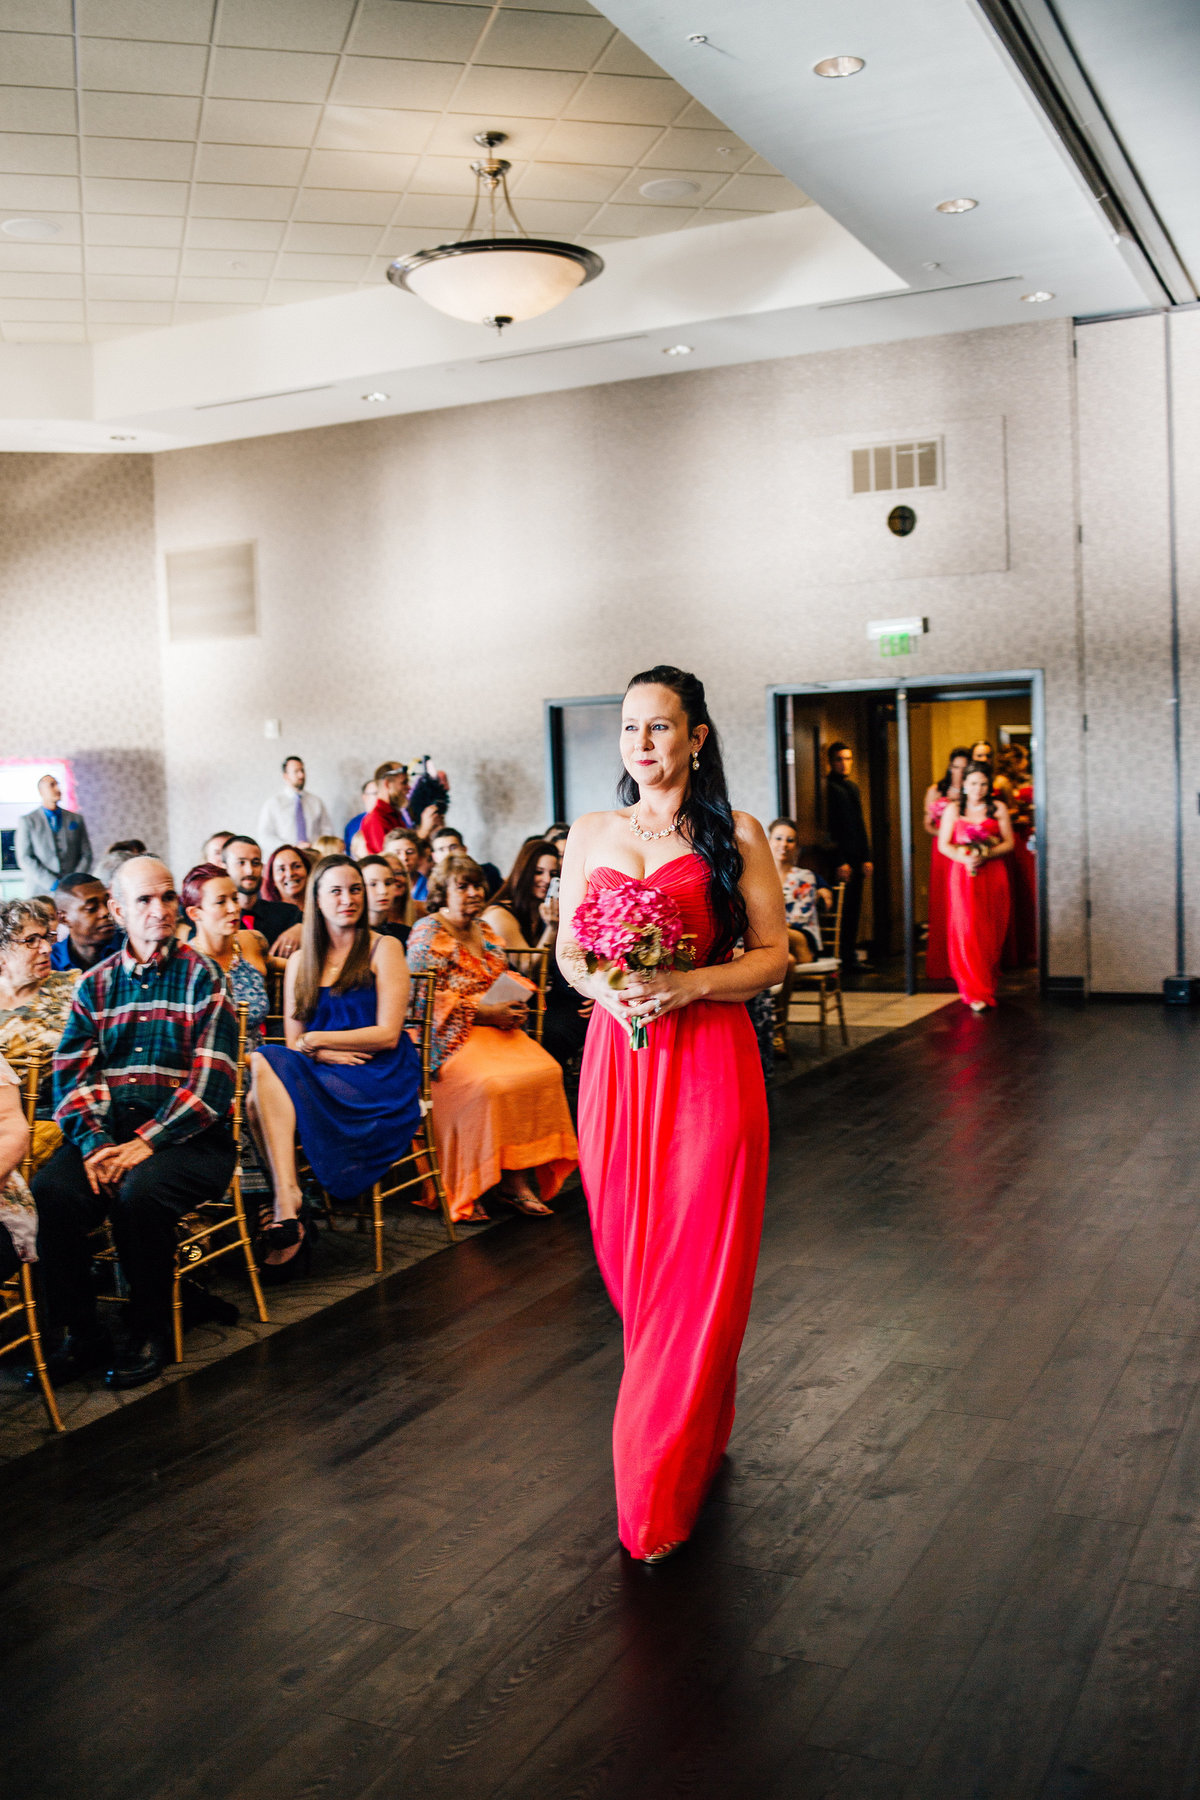 Kimberly_Hoyle_Photography_Milam_The_Back_Center_Melbourne_Wedding-24